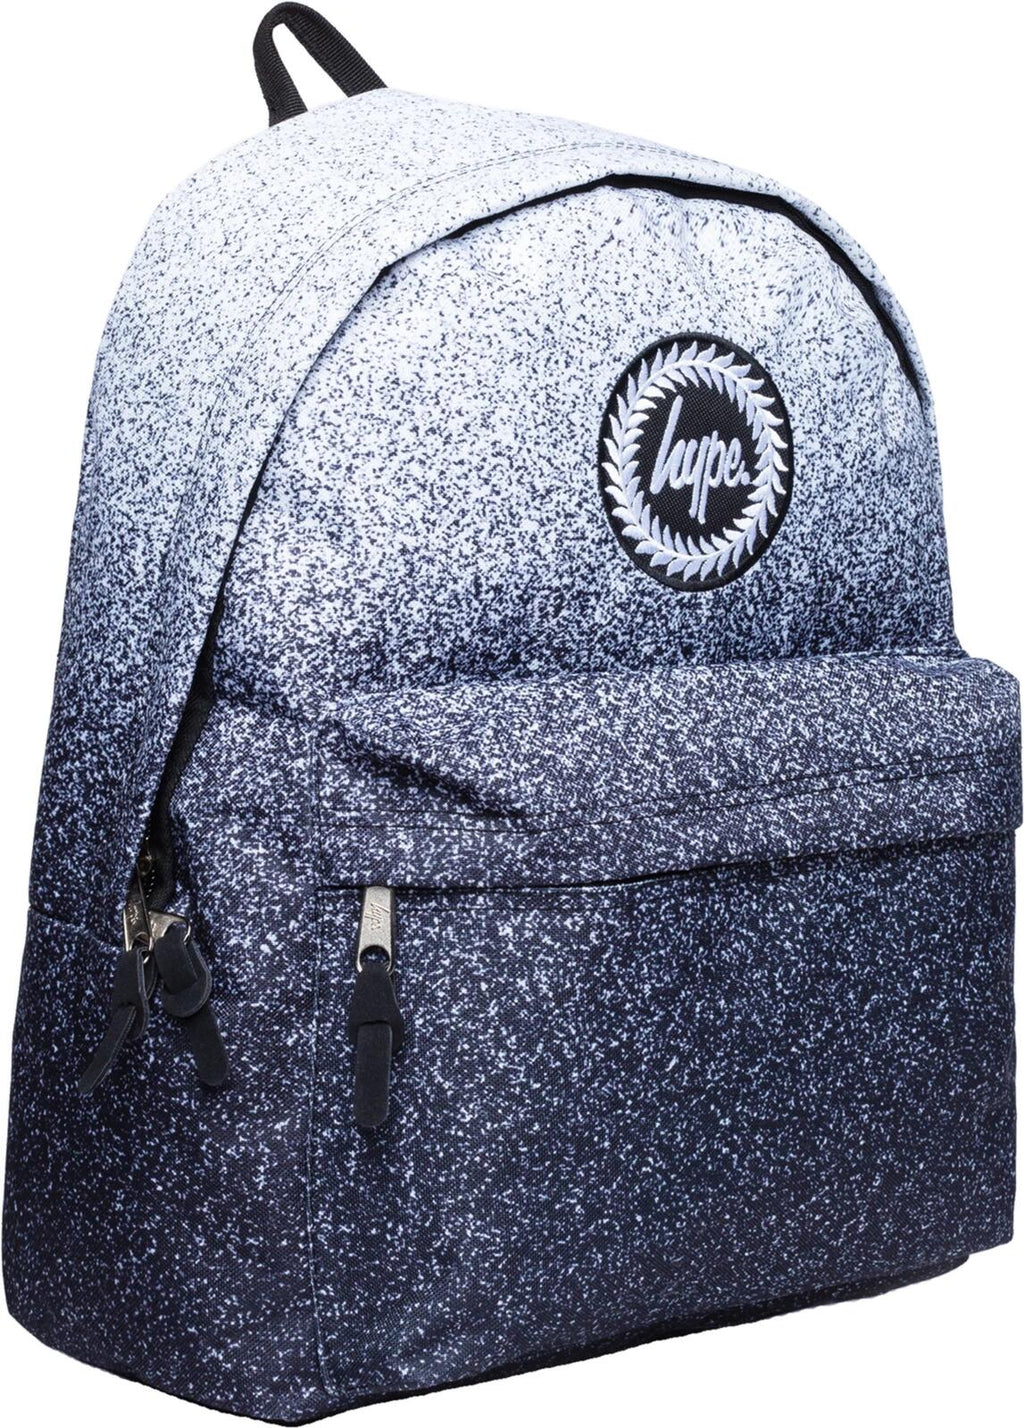 Hype Speckle Fade Backpack Bag Black